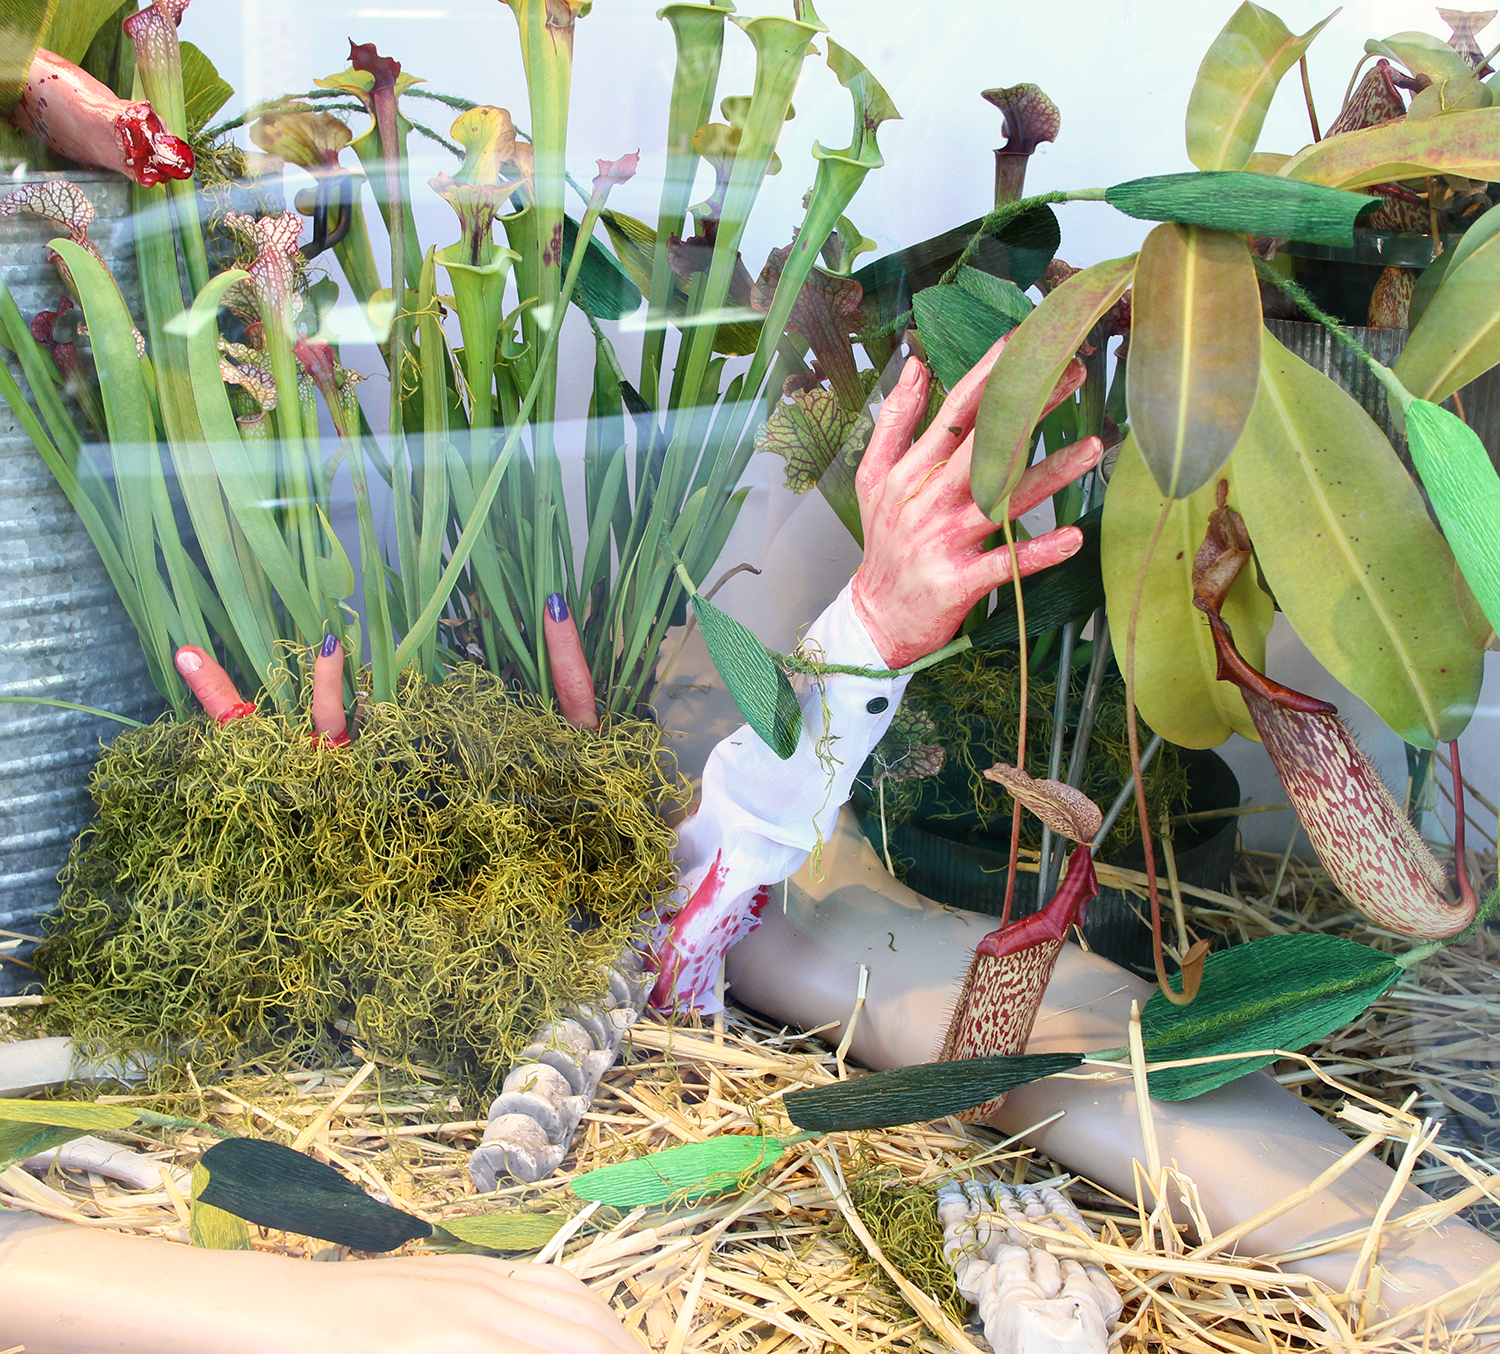 The carnivorous plants were provided by  Predatory Plants.